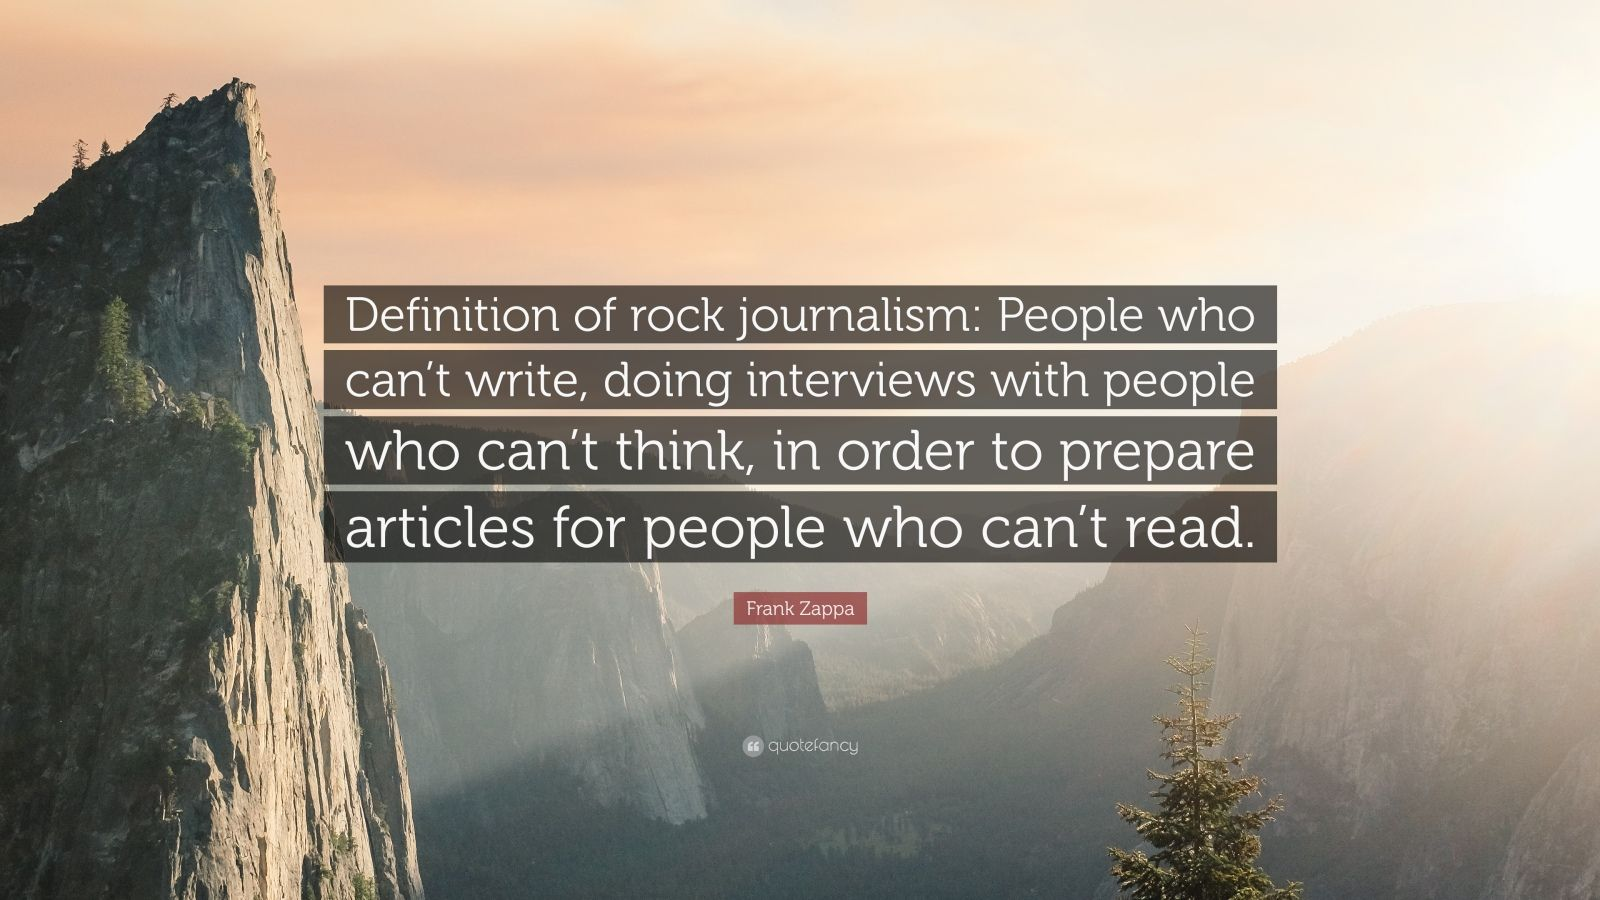 """Frank Zappa Quote: """"Definition of rock journalism: People who can't write, doing interviews with people who can't think, in order to prepare articles for people who can't read."""""""